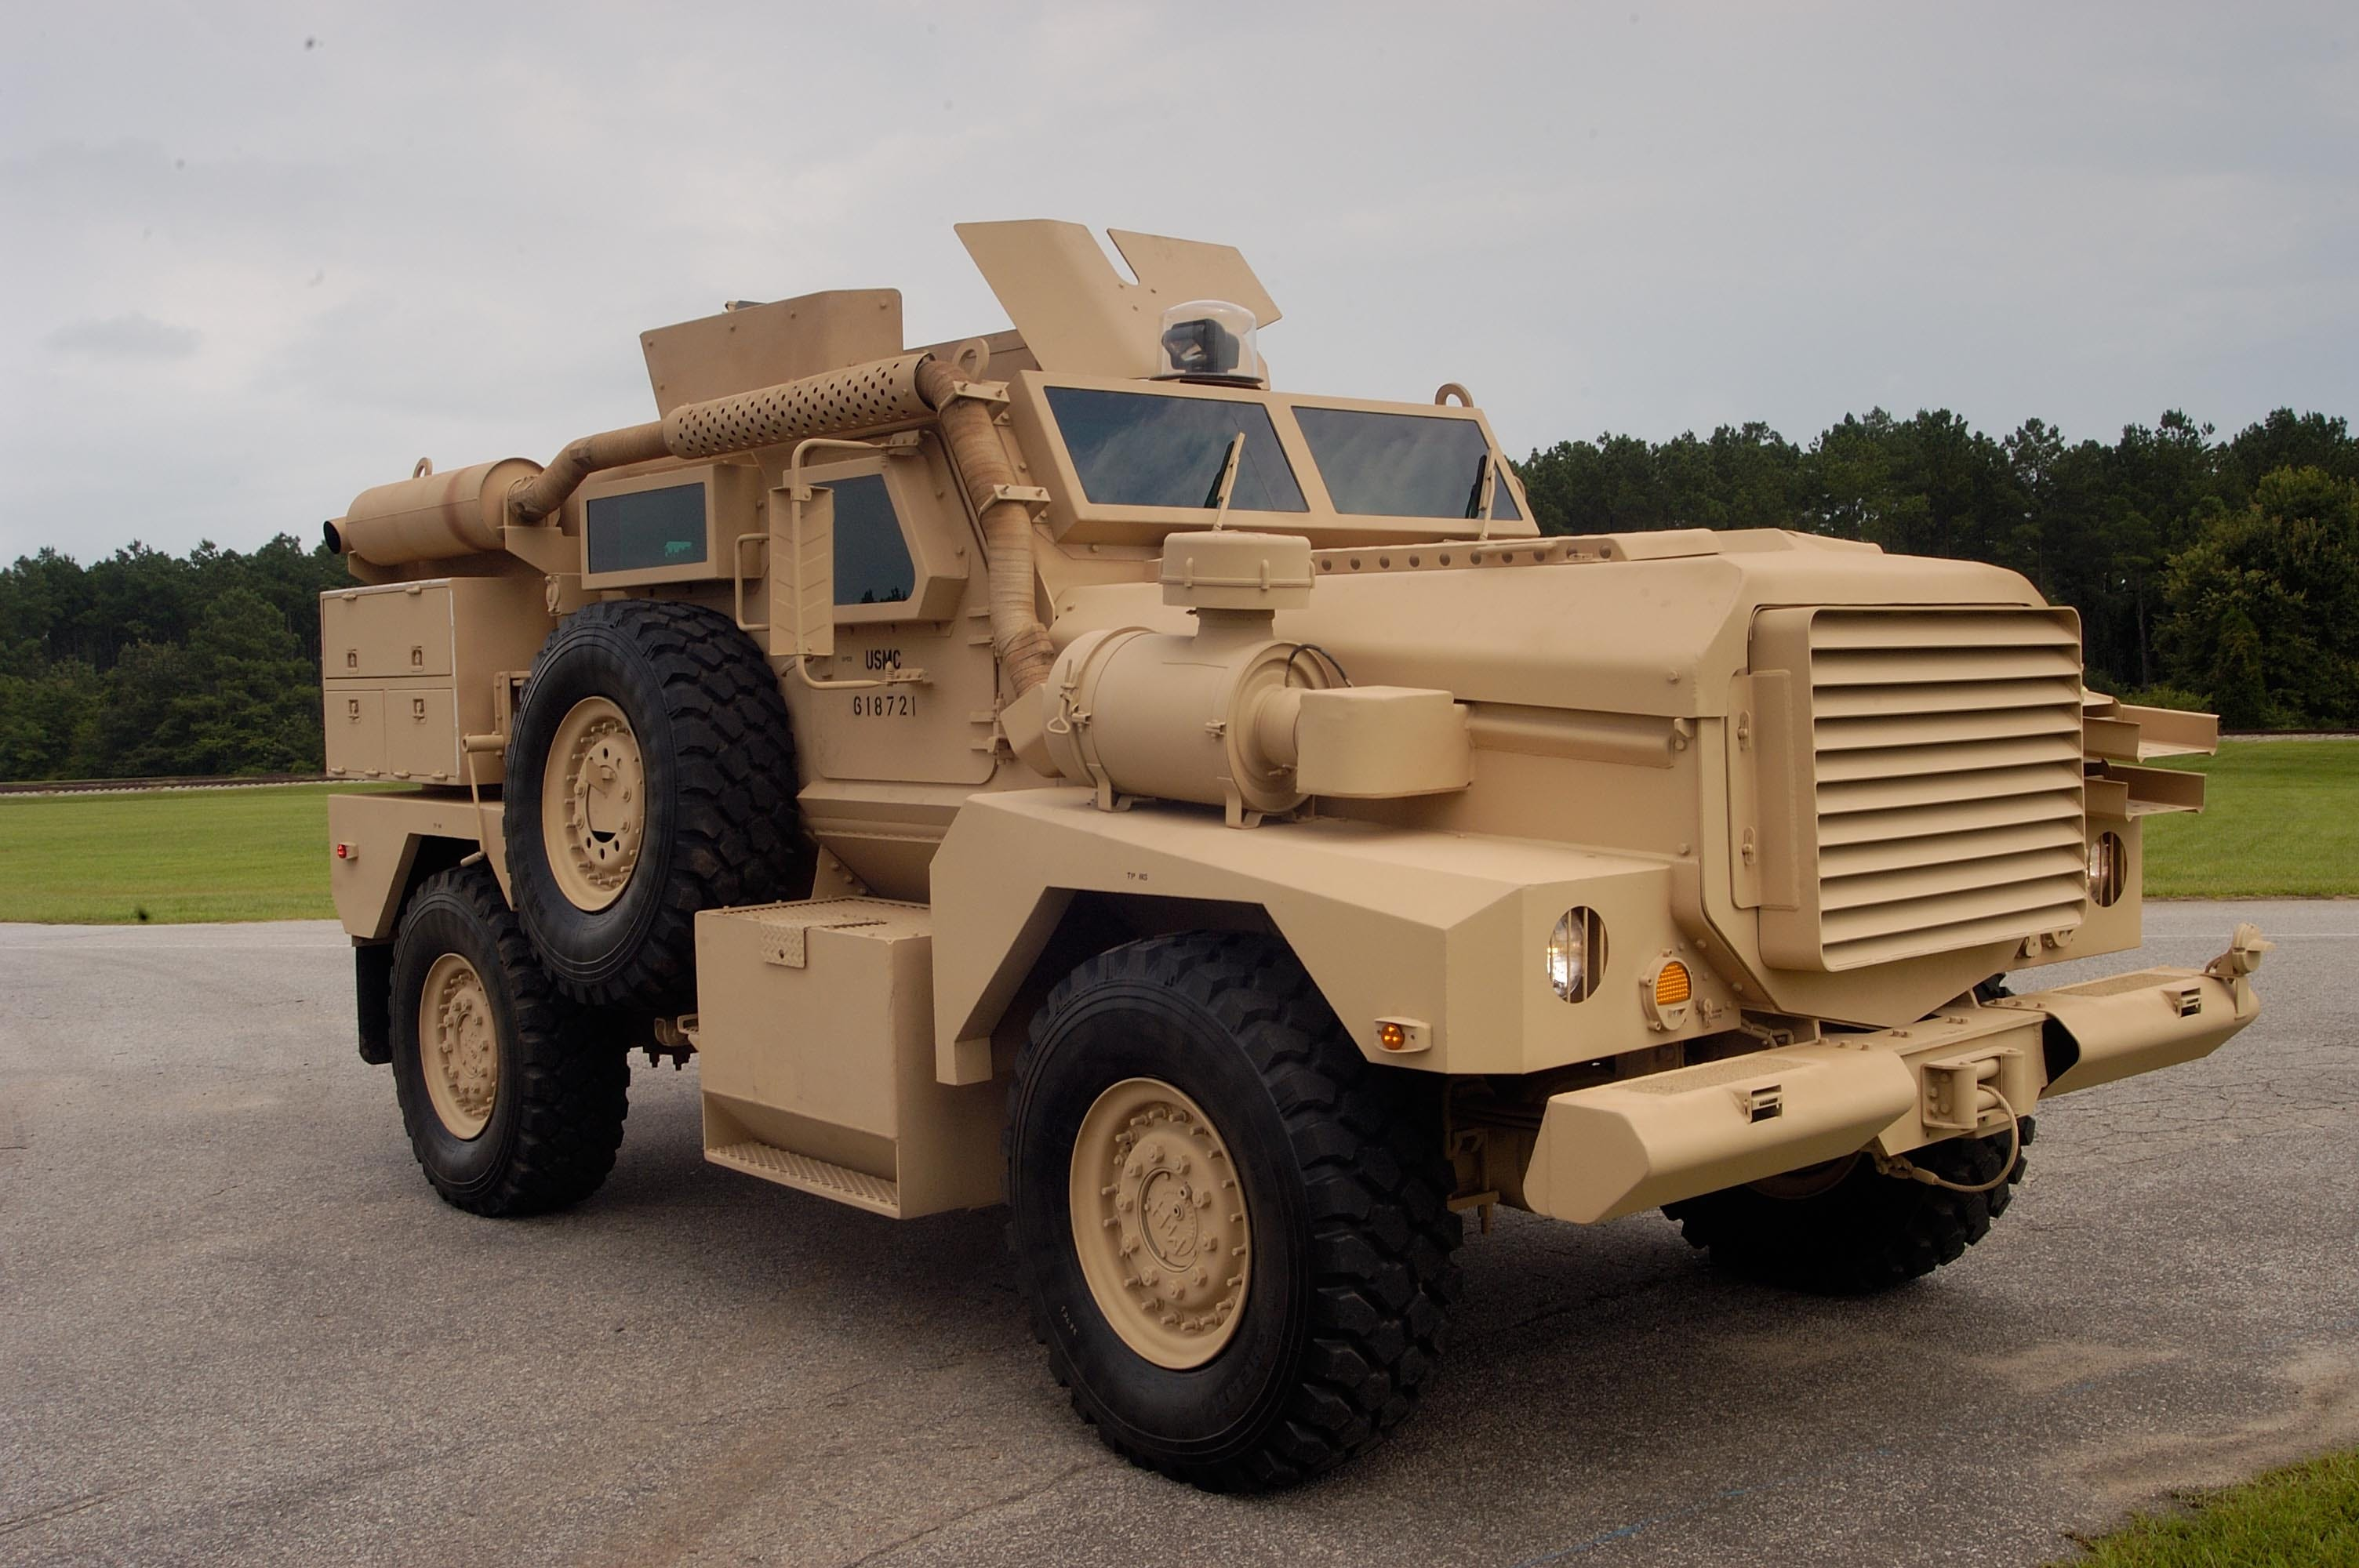 The wait remains for vehicle meant to replace Humvees